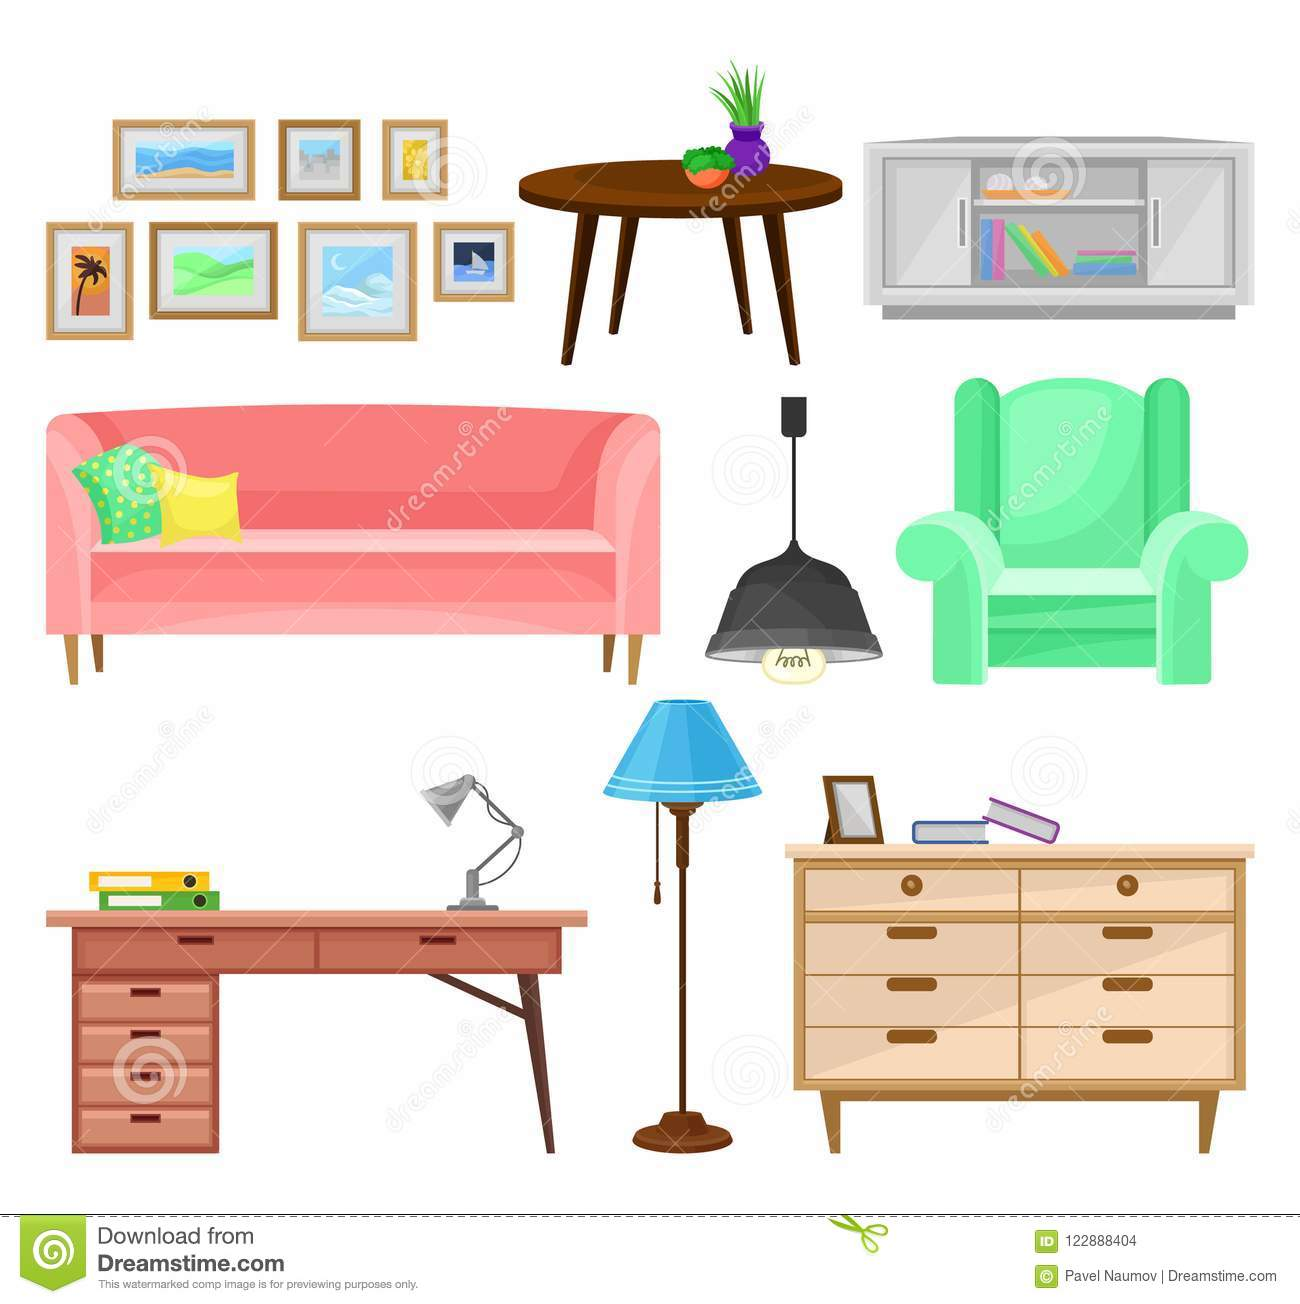 Modern furniture for living room set interior design elements vector illustrations isolated on a white background